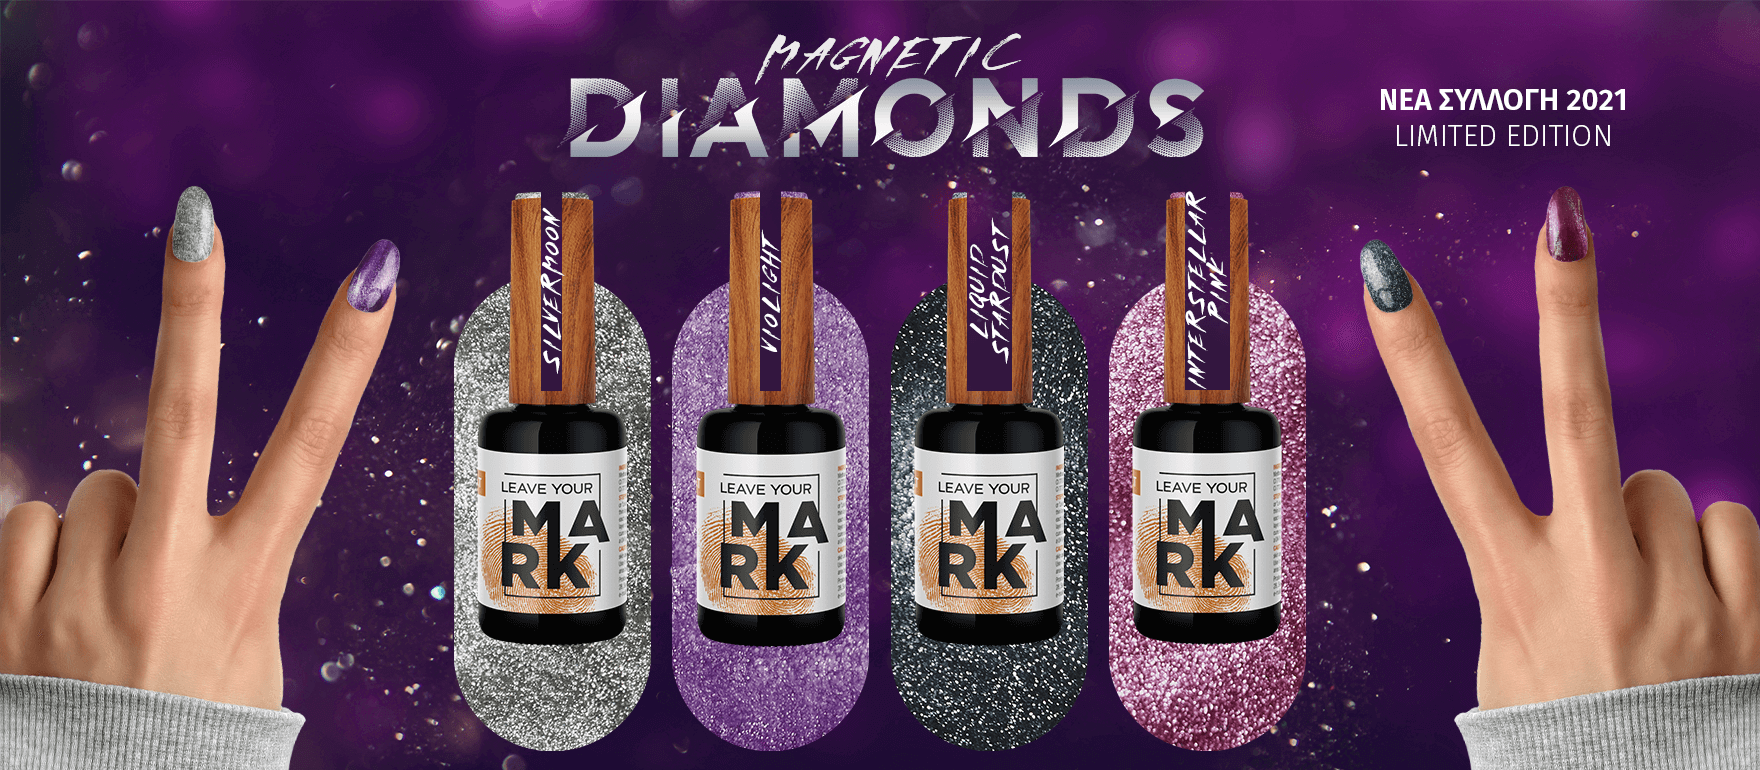 LYM Magnetic Diamonds